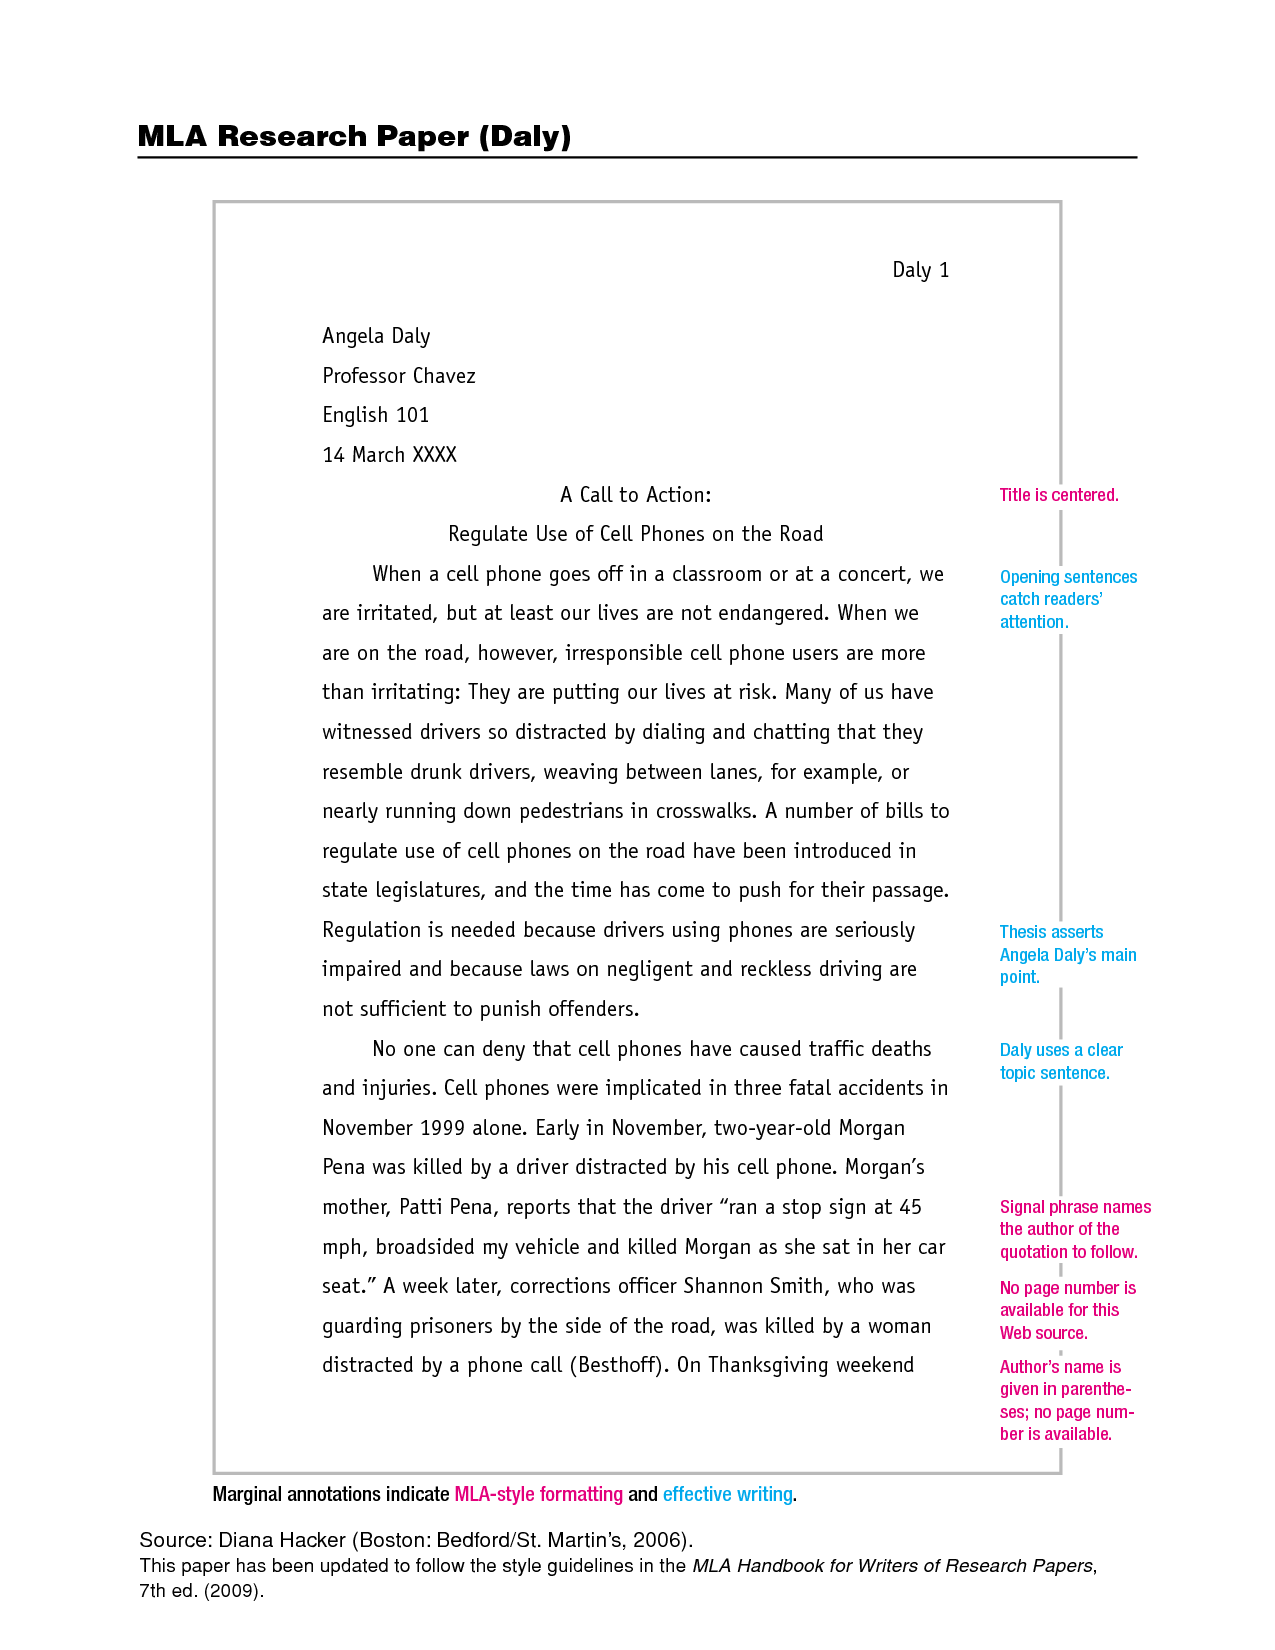 016 Research Paper Outline Of Remarkable Mla Template For A Full